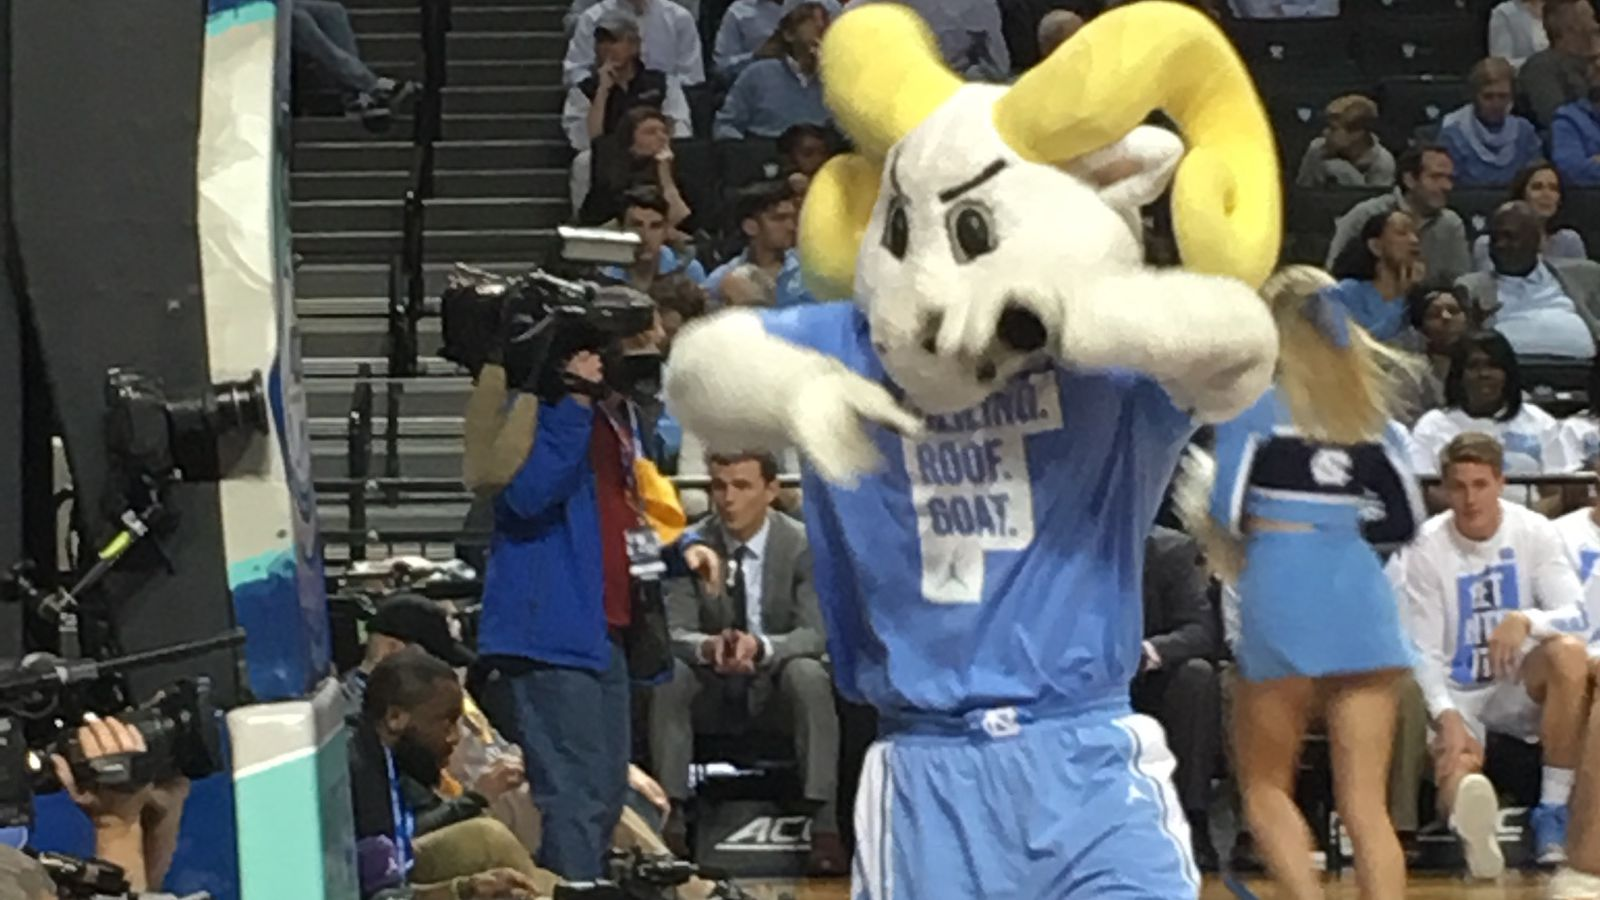 Unc S Band And Mascot Are Wearing Shirts That Say Ceiling